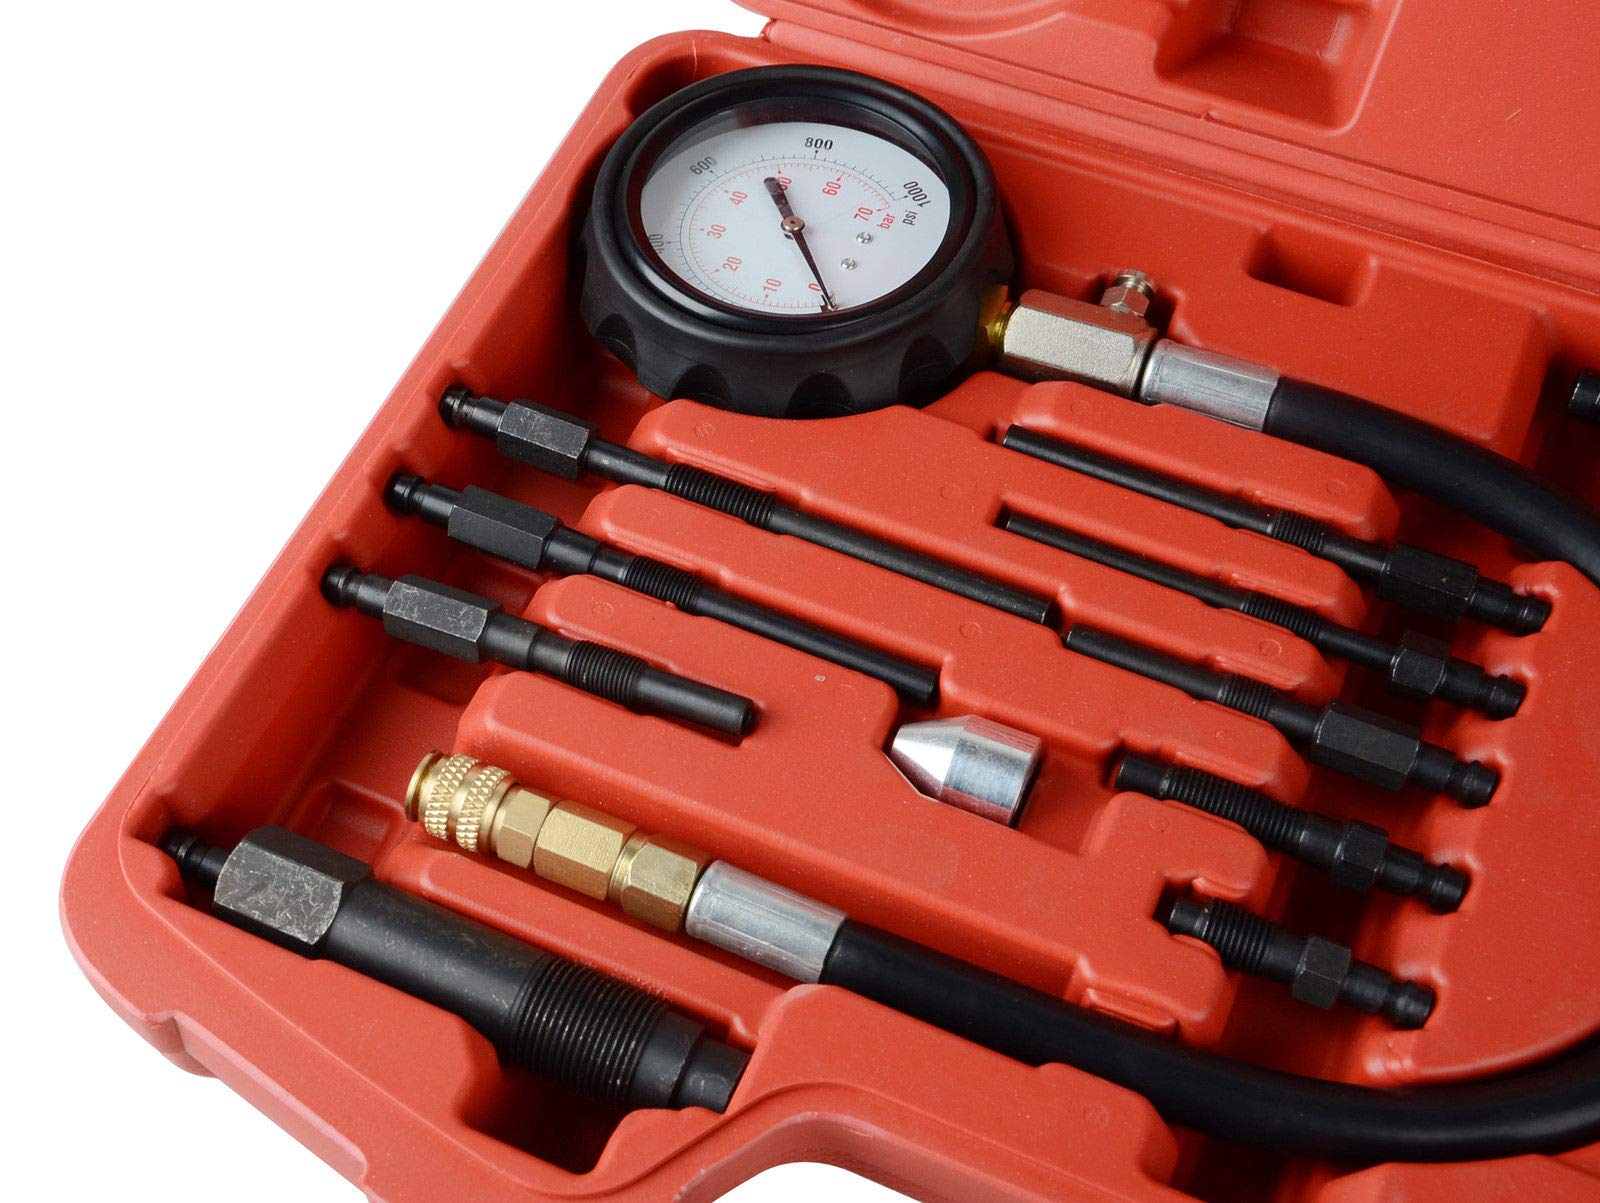 YOLO Stores - Compression Tester Diesel Engine Kit 17pc Tool Set Automotive Compressor, 0-70 Bar/0-1000 Psi, 17 Pieces by YOLO Stores (Image #4)